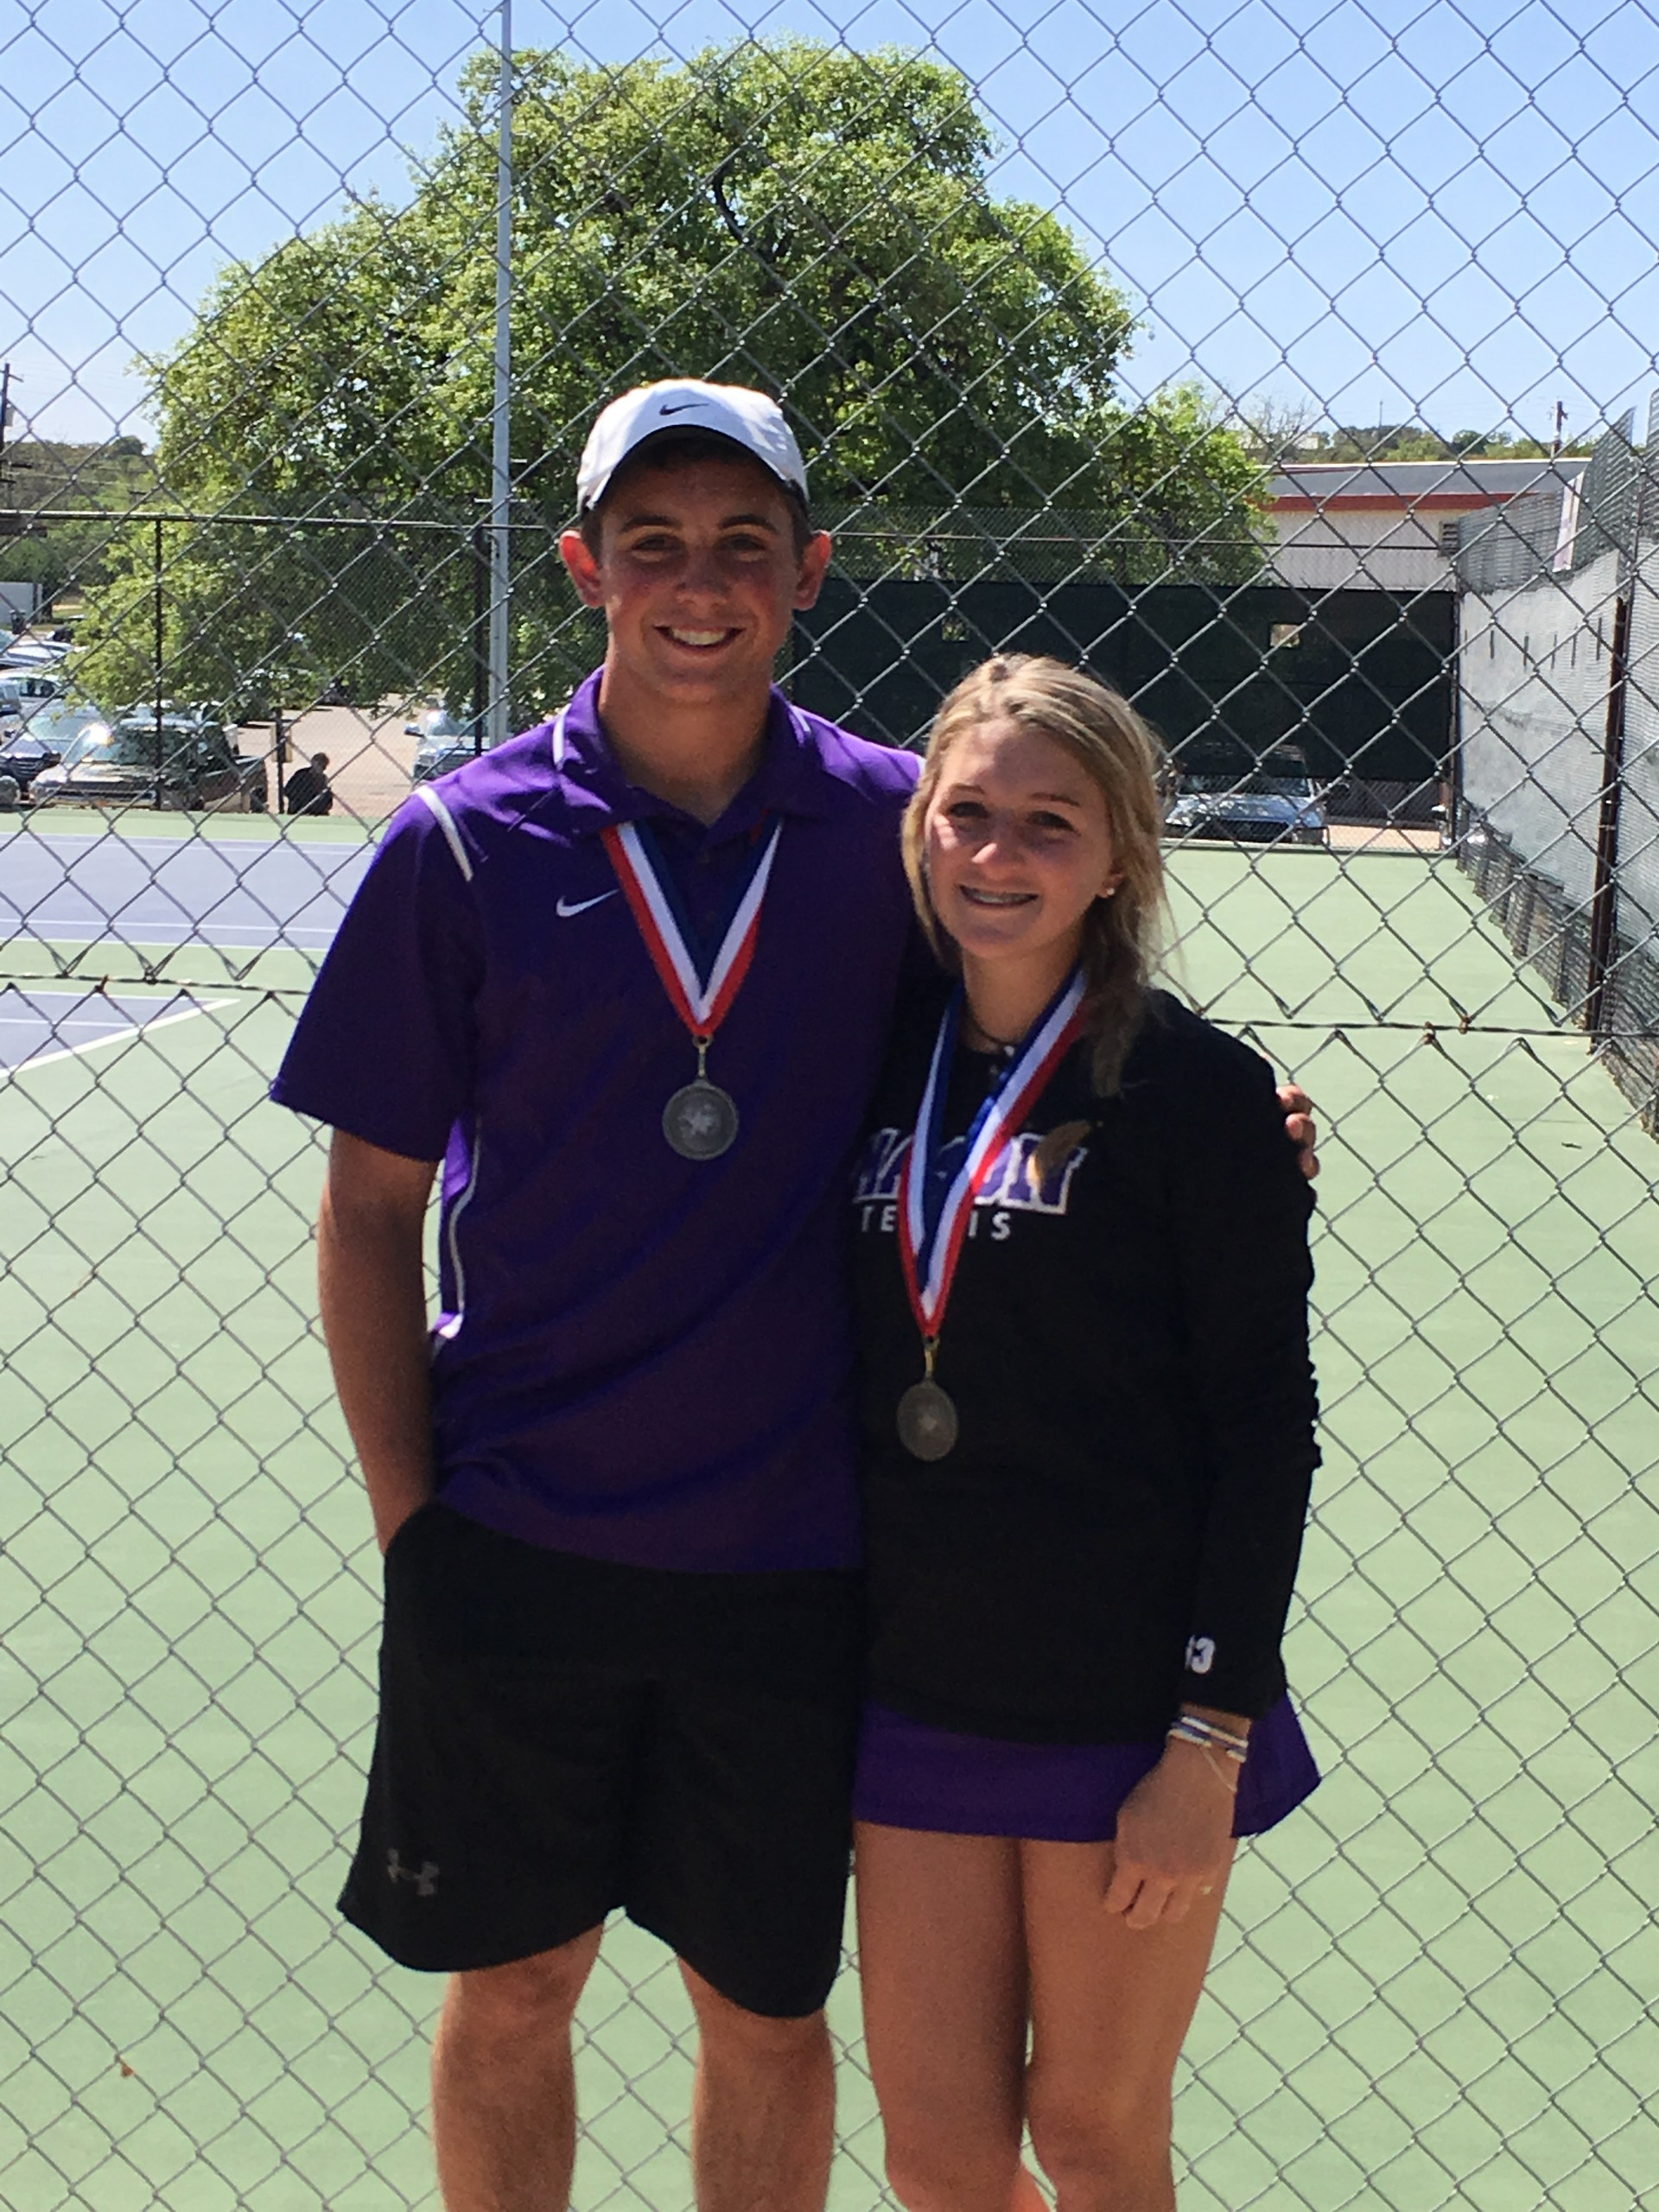 Rudy Rochat & Ella Canfield - Varsity Mixed Doubles 2nd Place